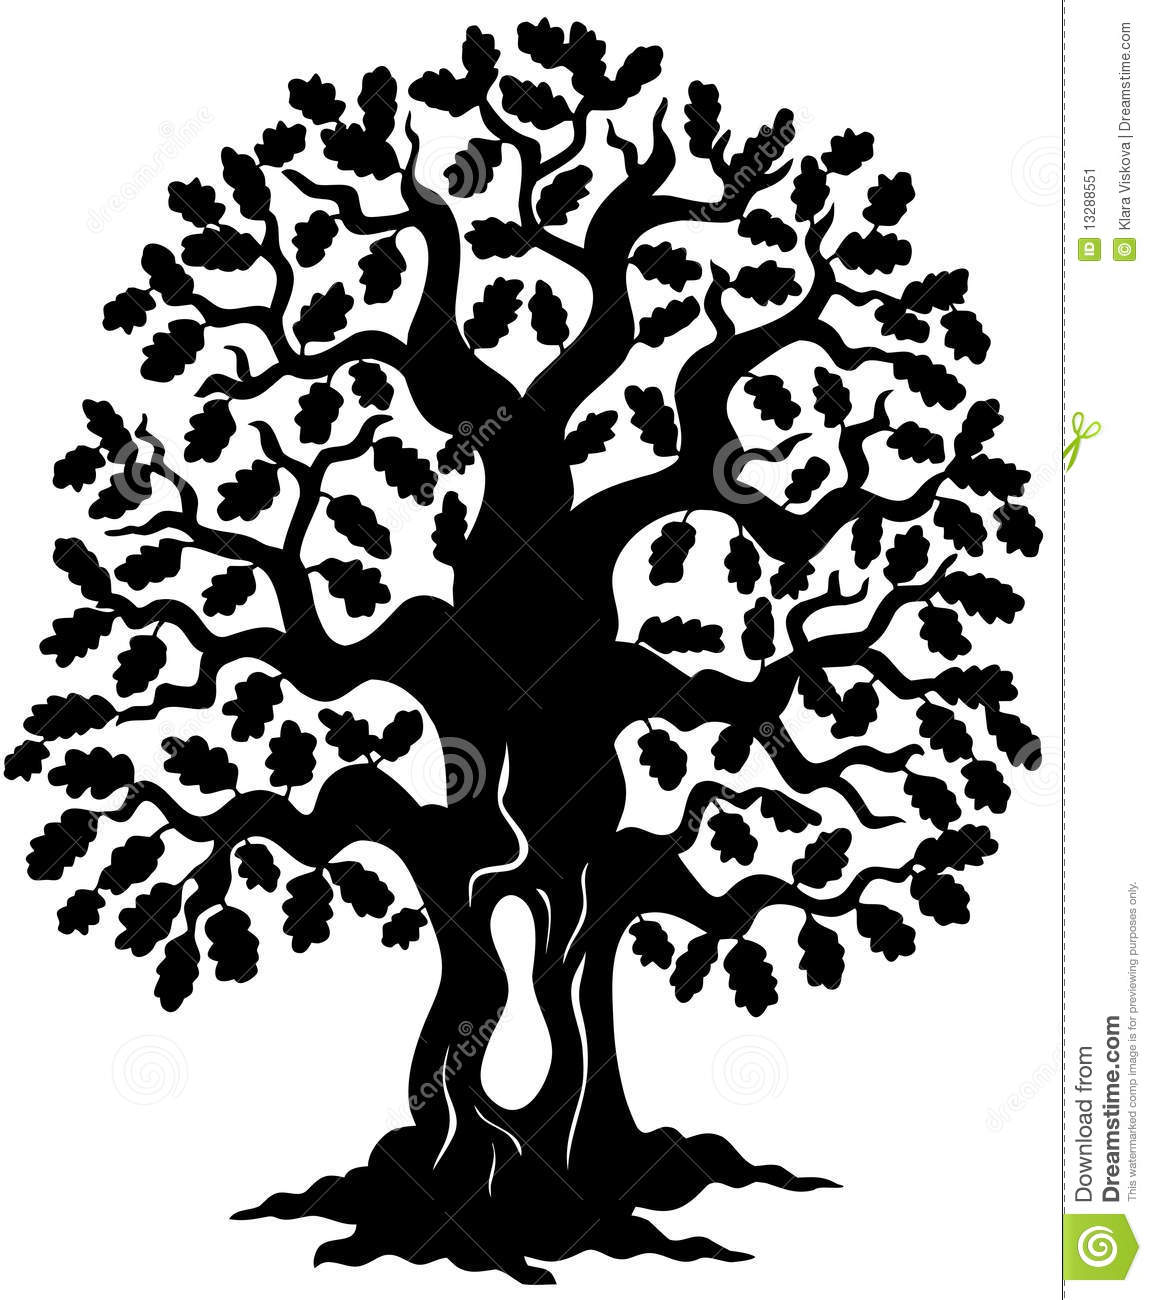 maple tree silhouette at getdrawings com free for personal use rh getdrawings com maple tree images clip art clipart maple tree